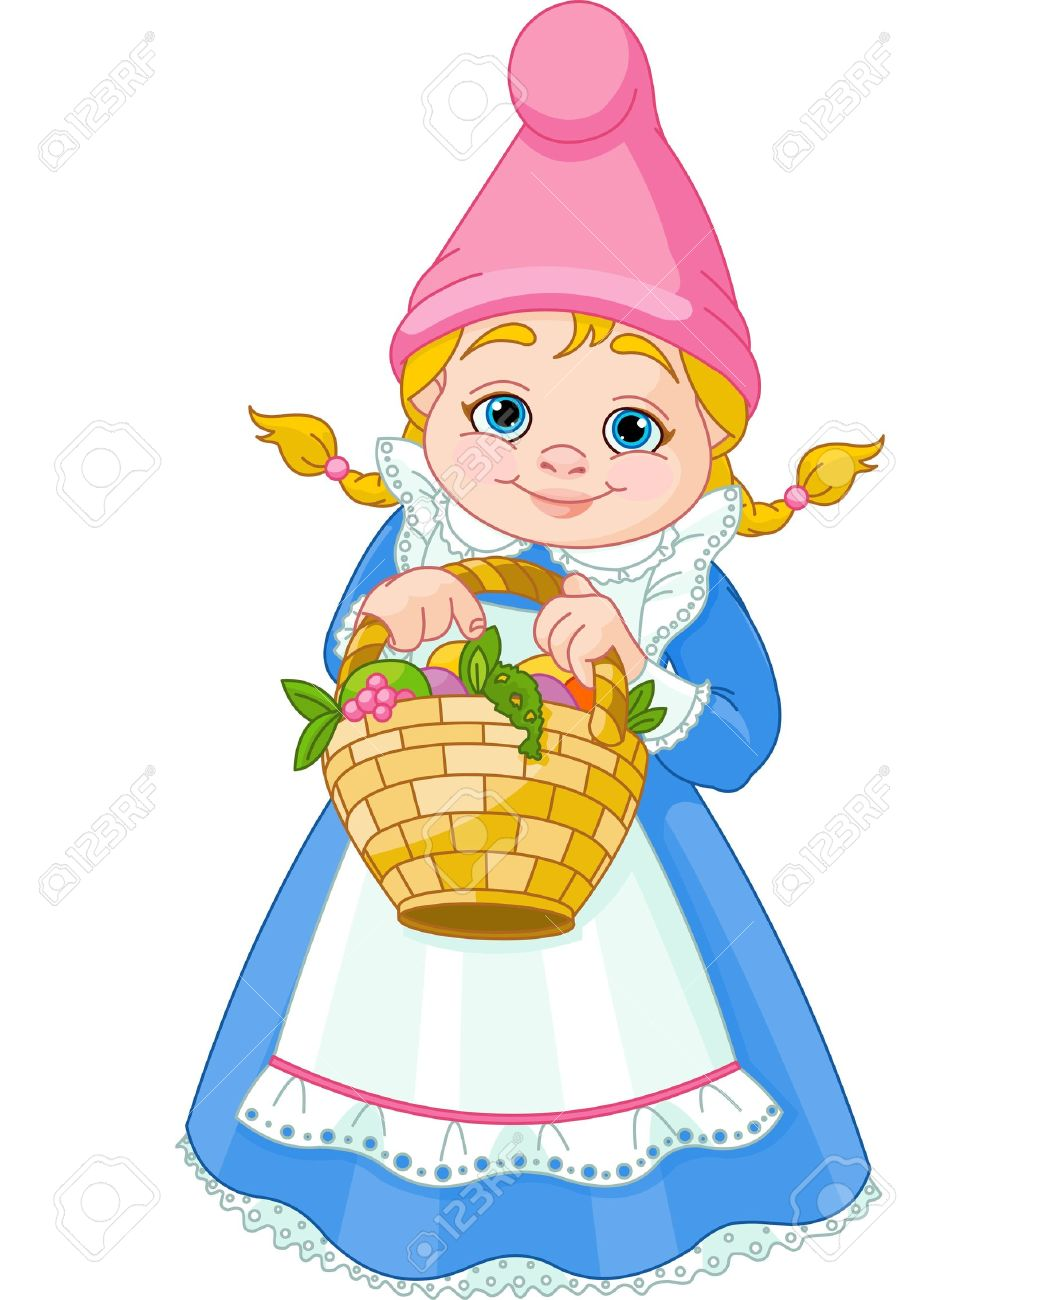 Garden Gnome: Illustration Of Cute Garden Gnome Girl With Basket With  Flowers And Fruit